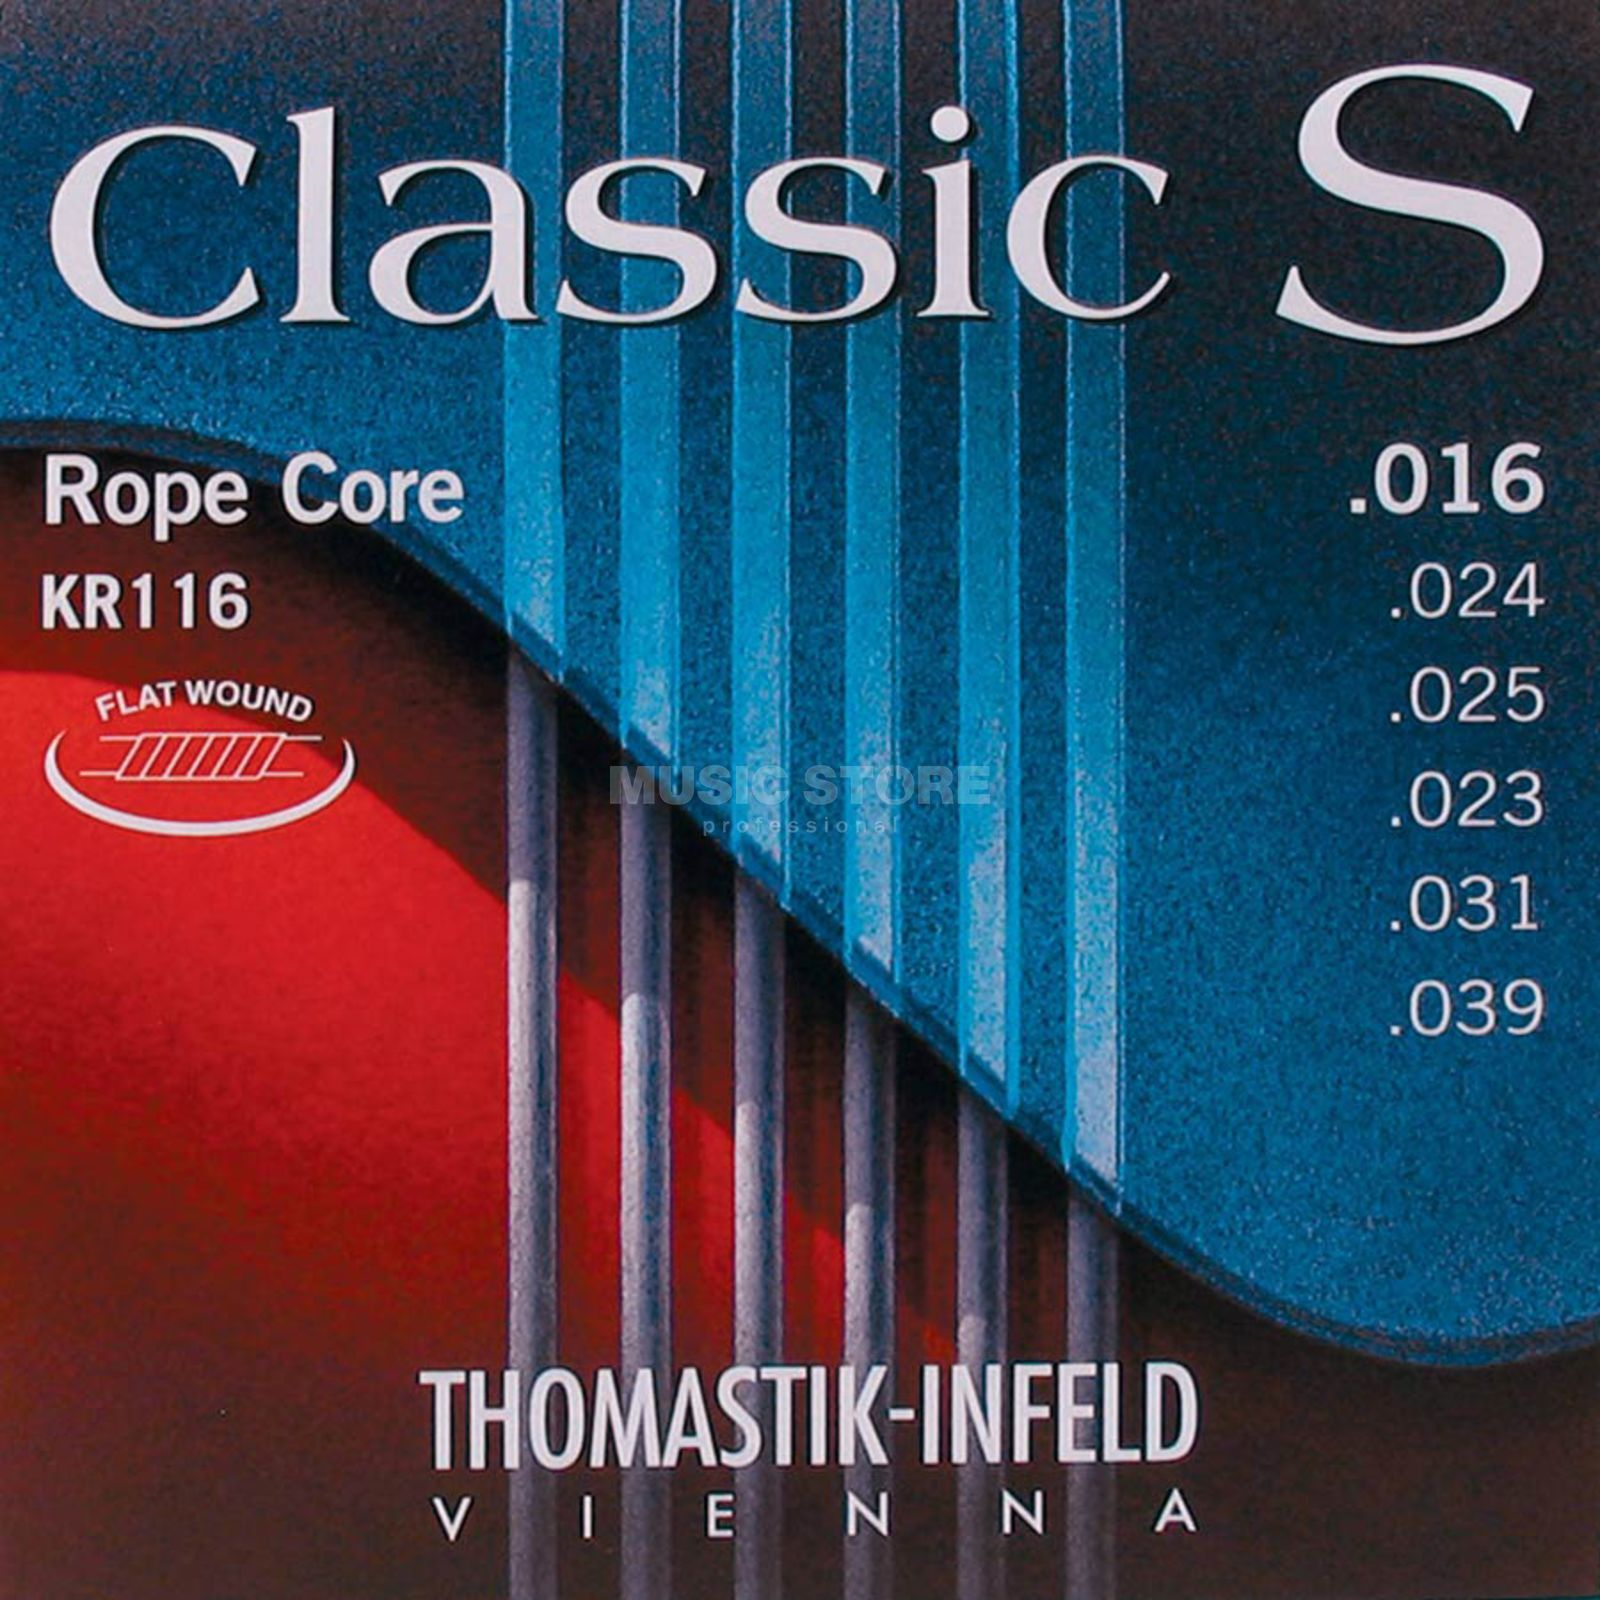 Thomastik Classic S Strings,  KR116 Rope Core, Flat Wound Produktbillede